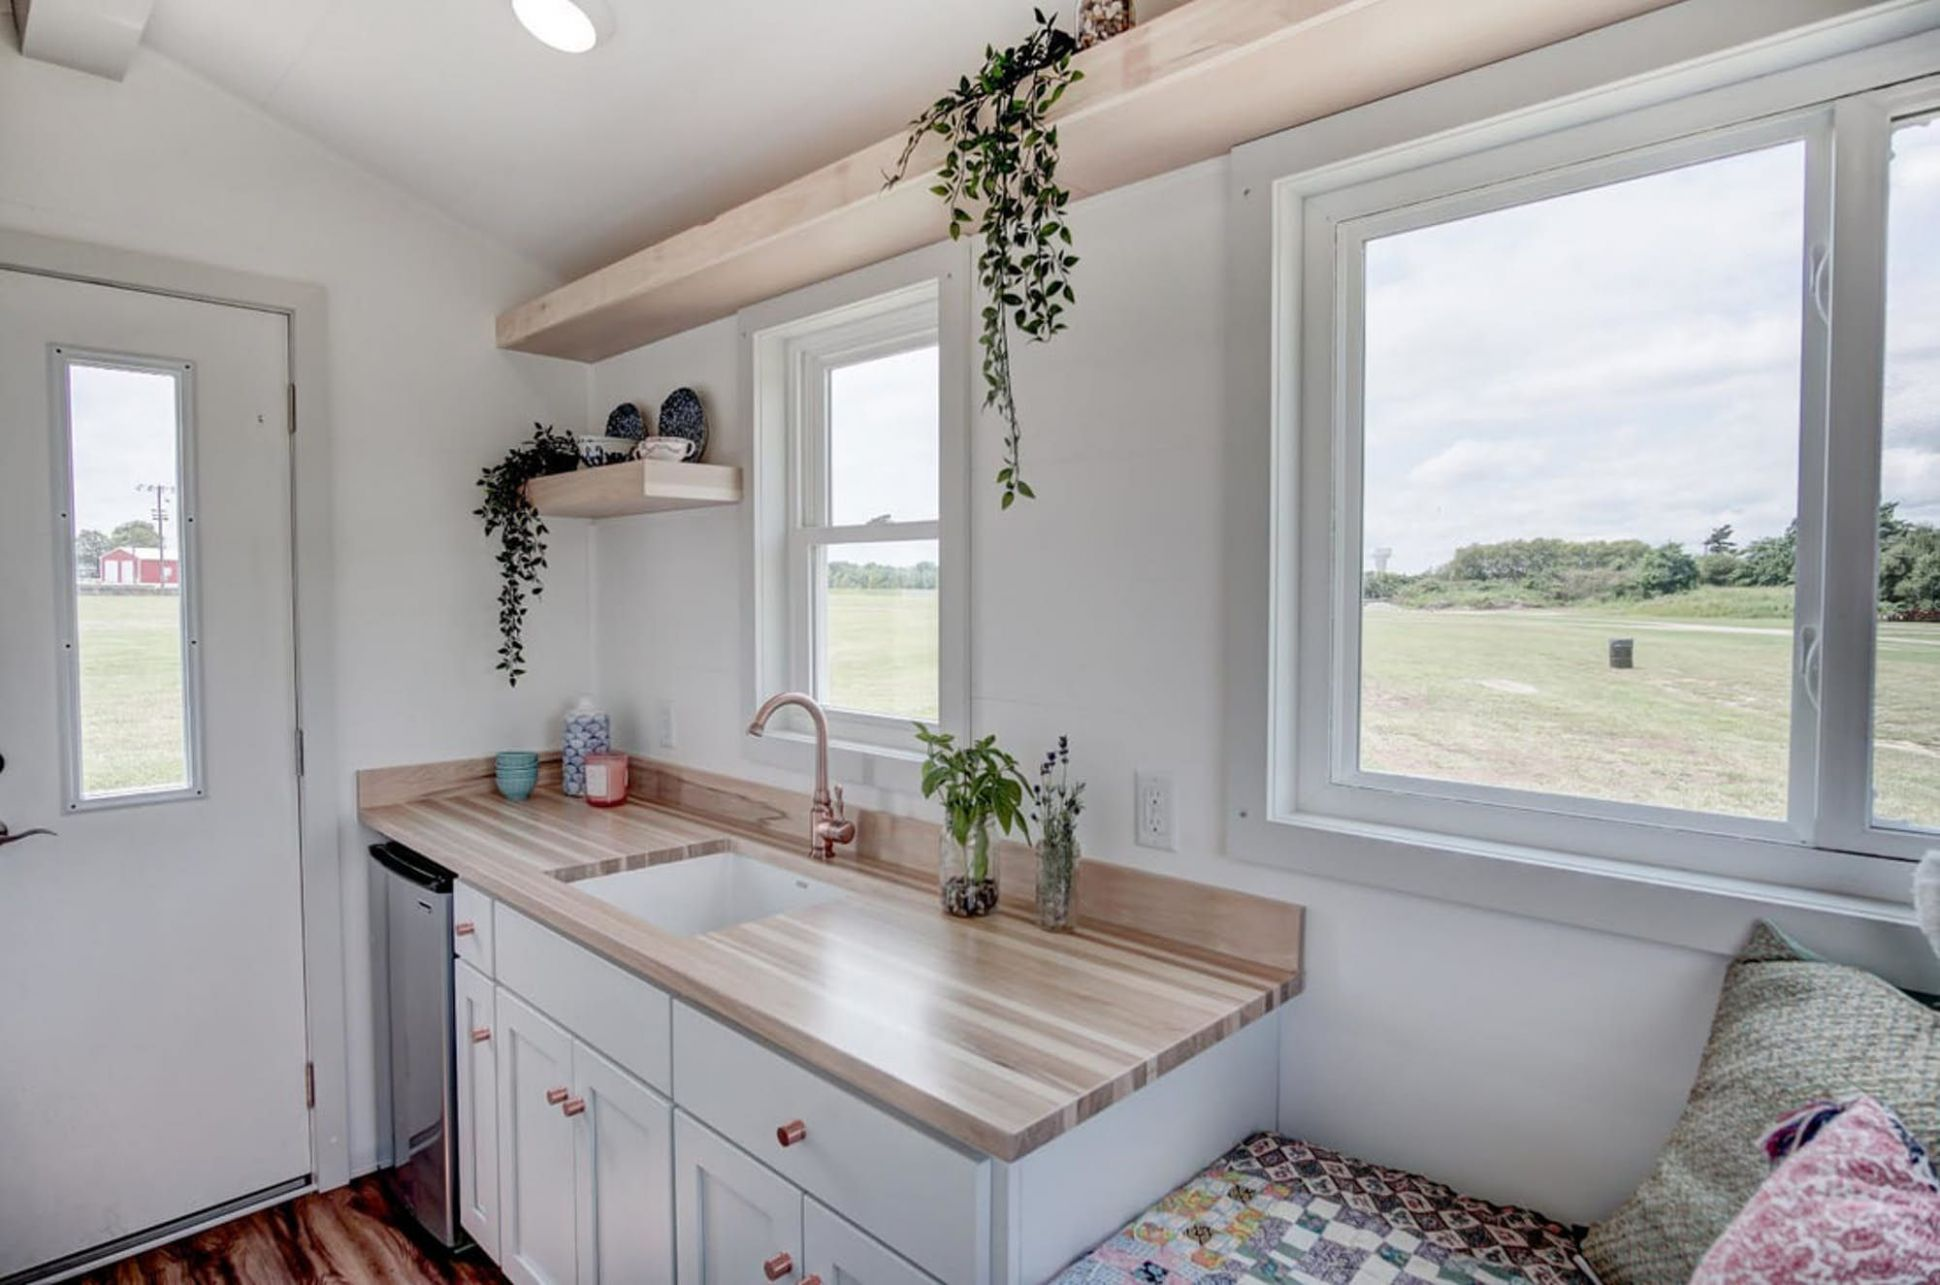 Darling tiny house packs all the essentials in 9 square feet ..